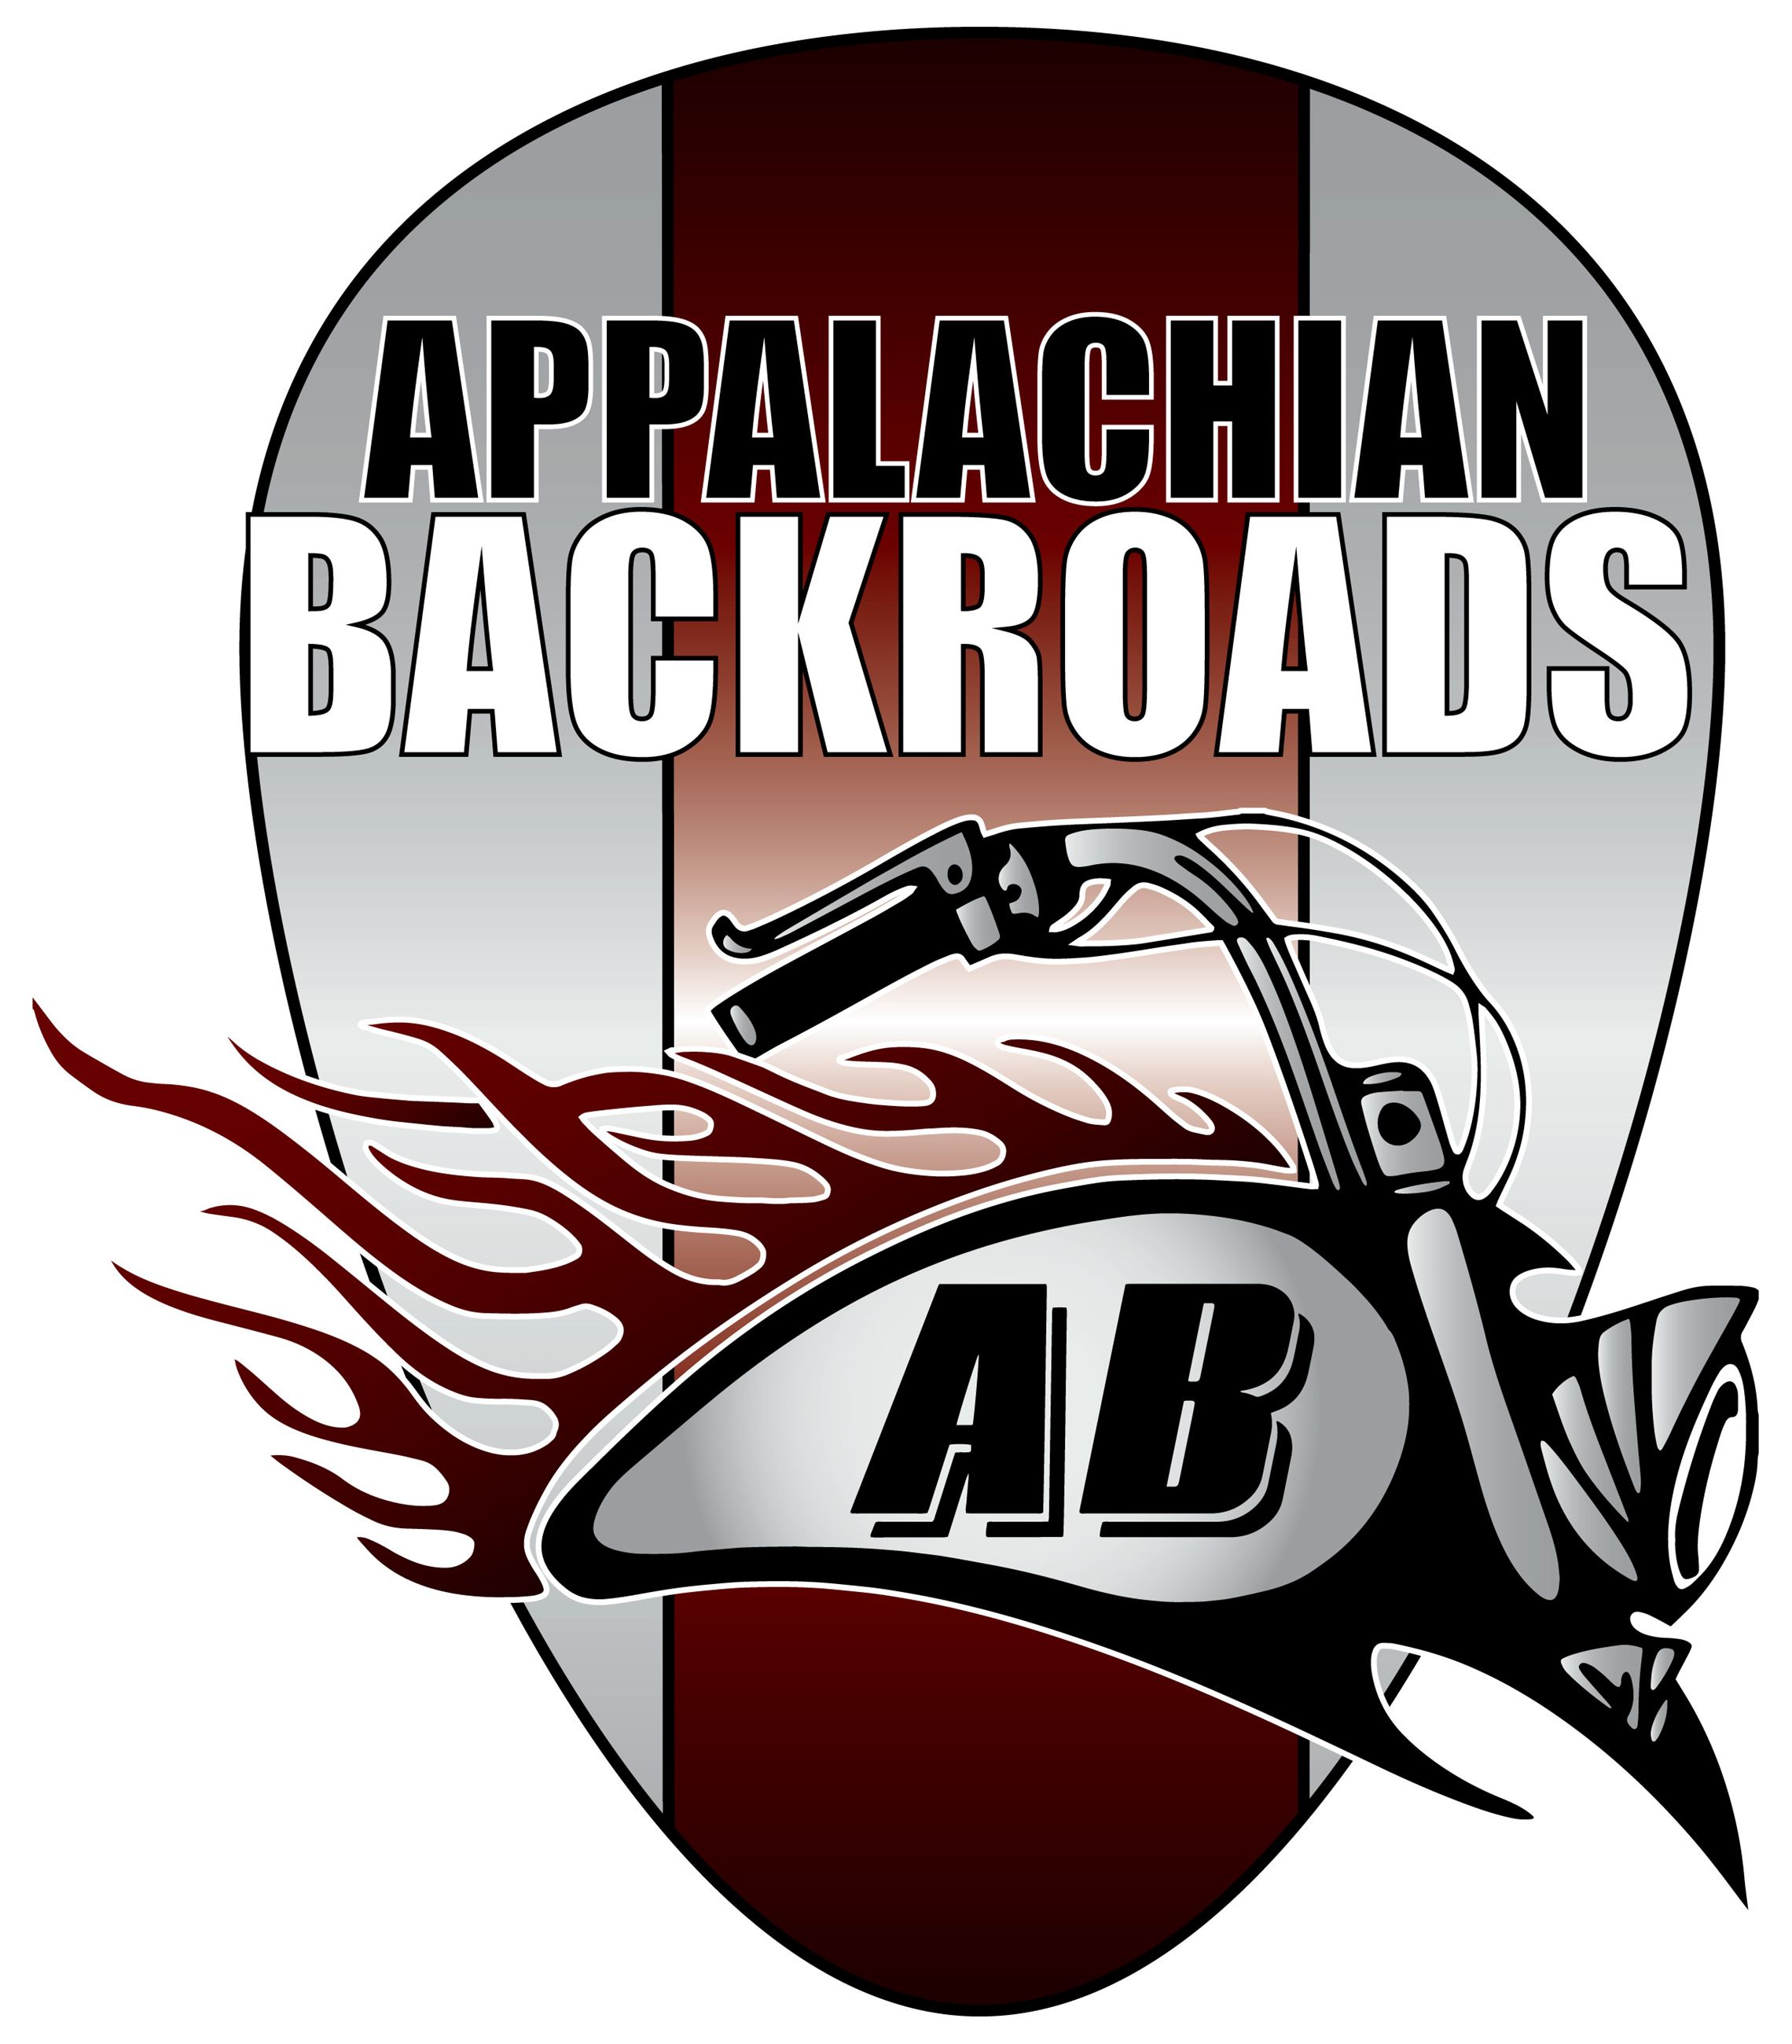 Photo of Appalachian Backroads logo